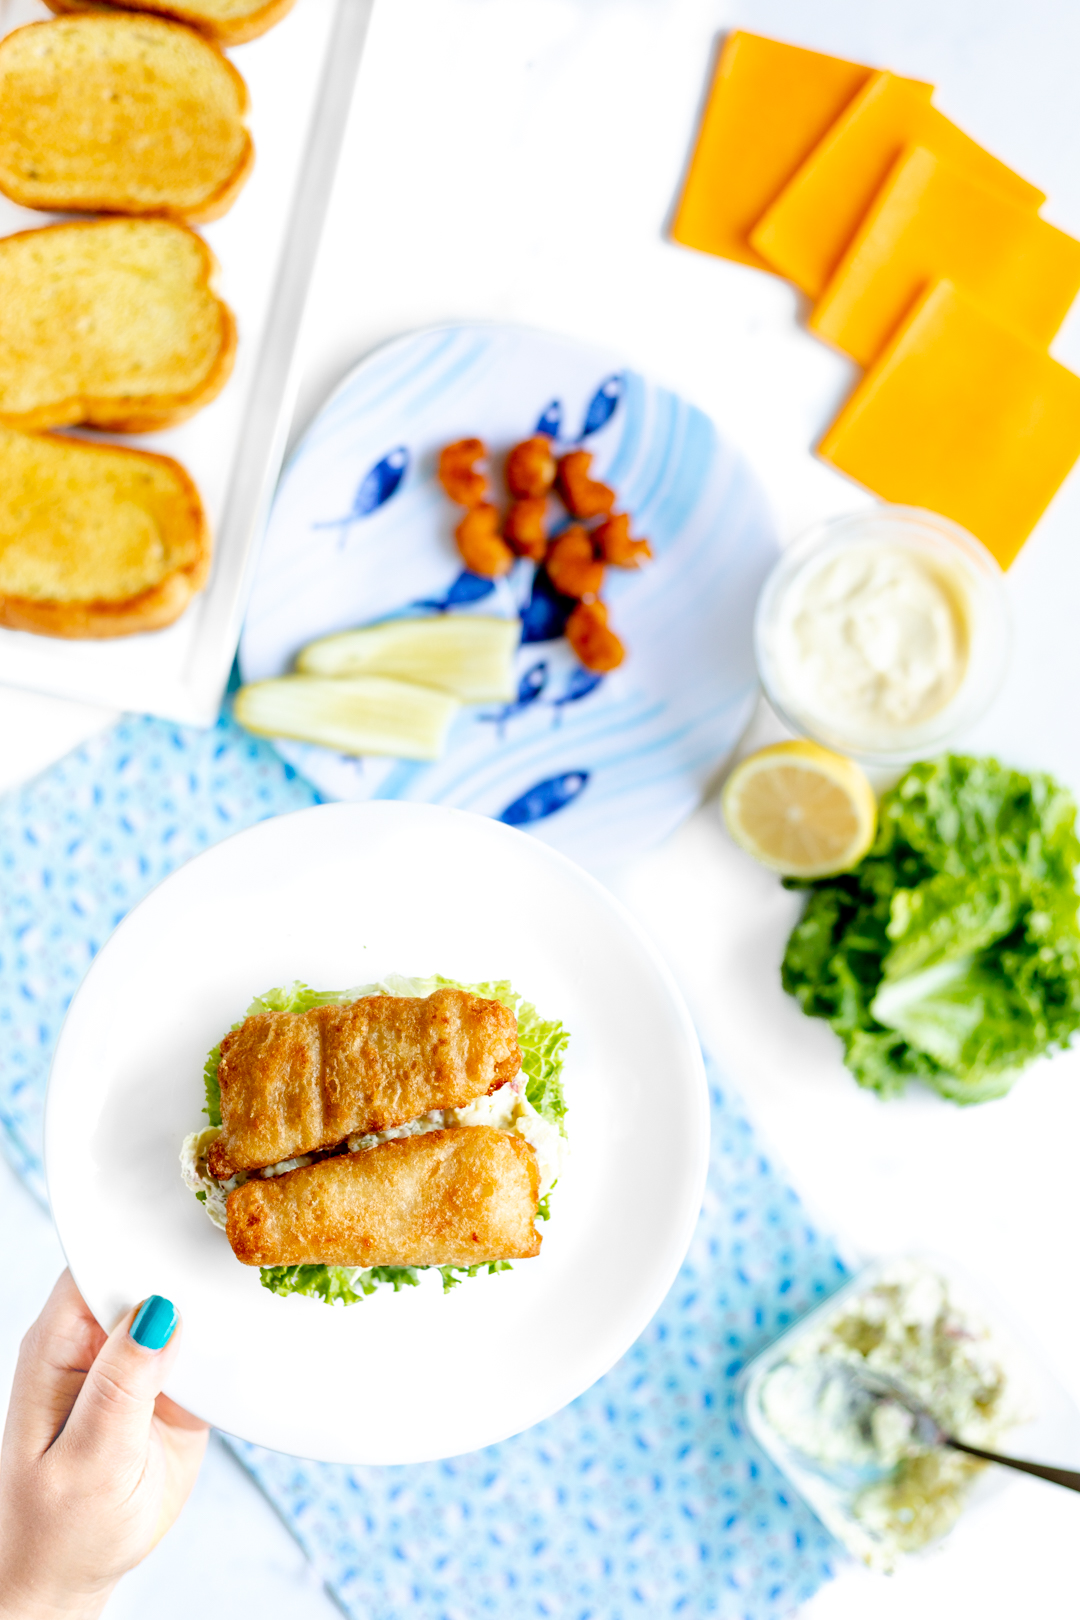 Easy Family Dinner. Over the top Fish Sandwiches made with red bliss potato salad and garlic mayo.